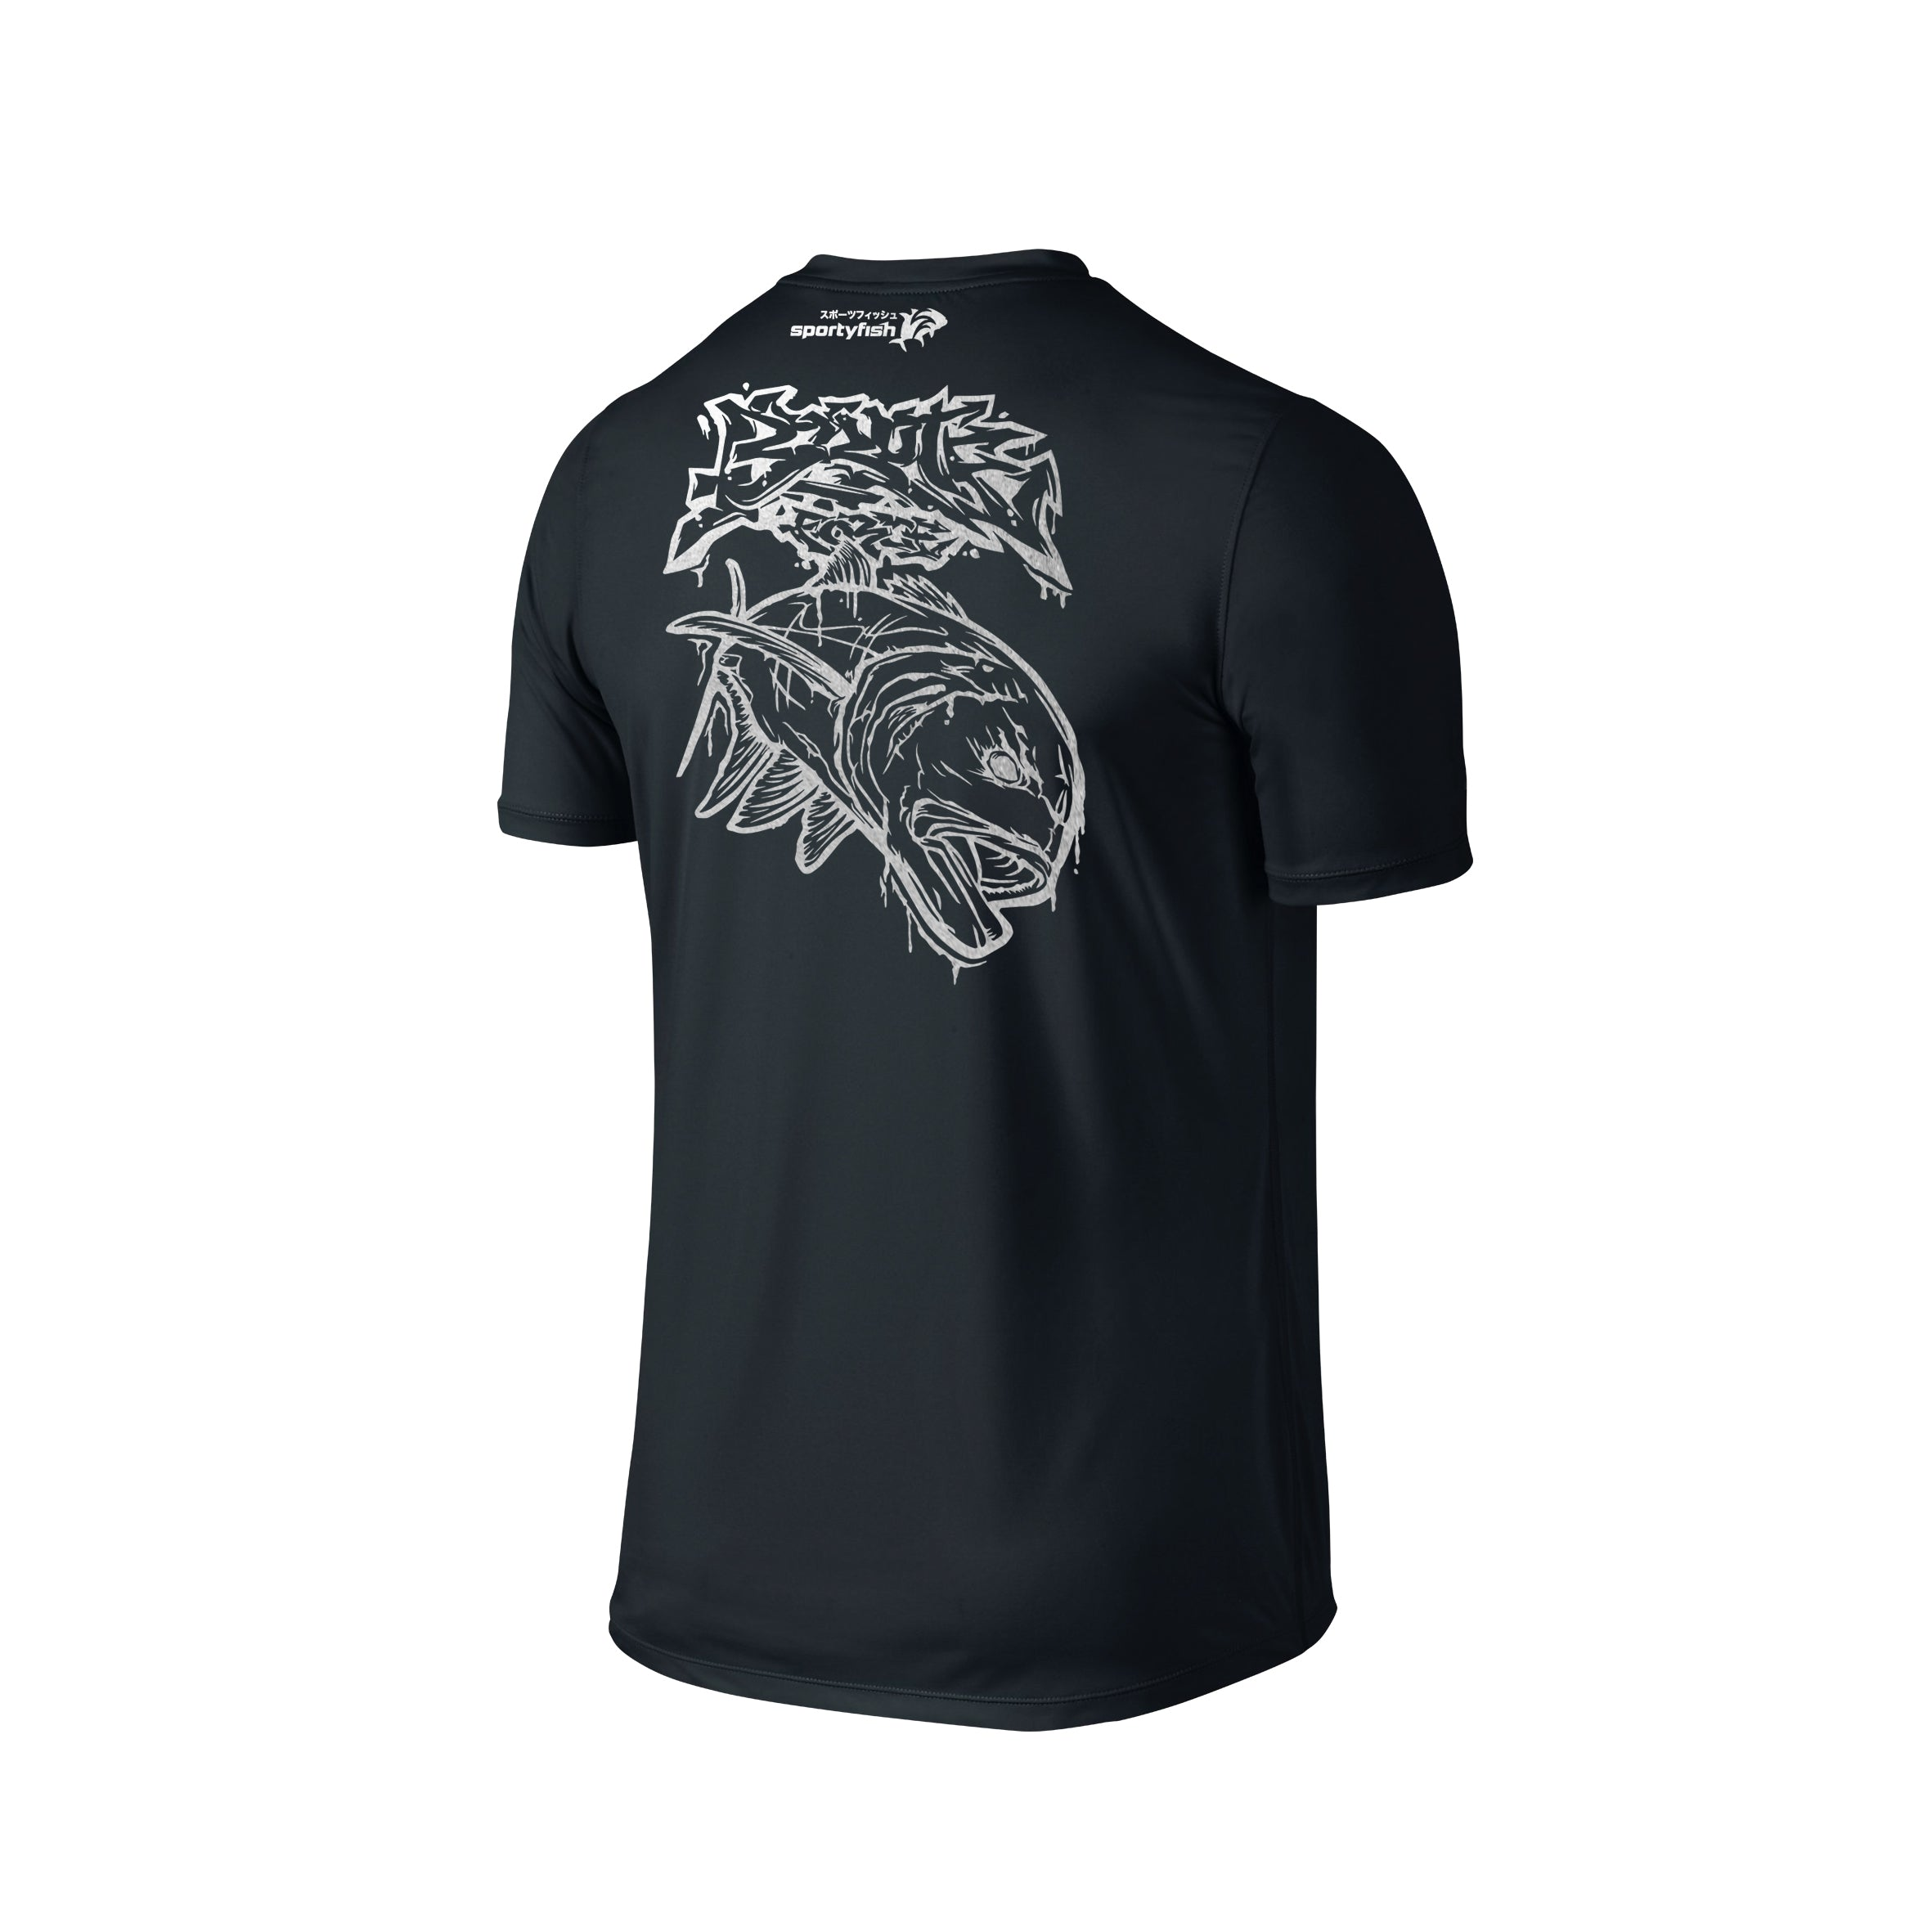 Wildstyle Graffiti Series Black T-shirt(back view)Silver: Giant Trevally